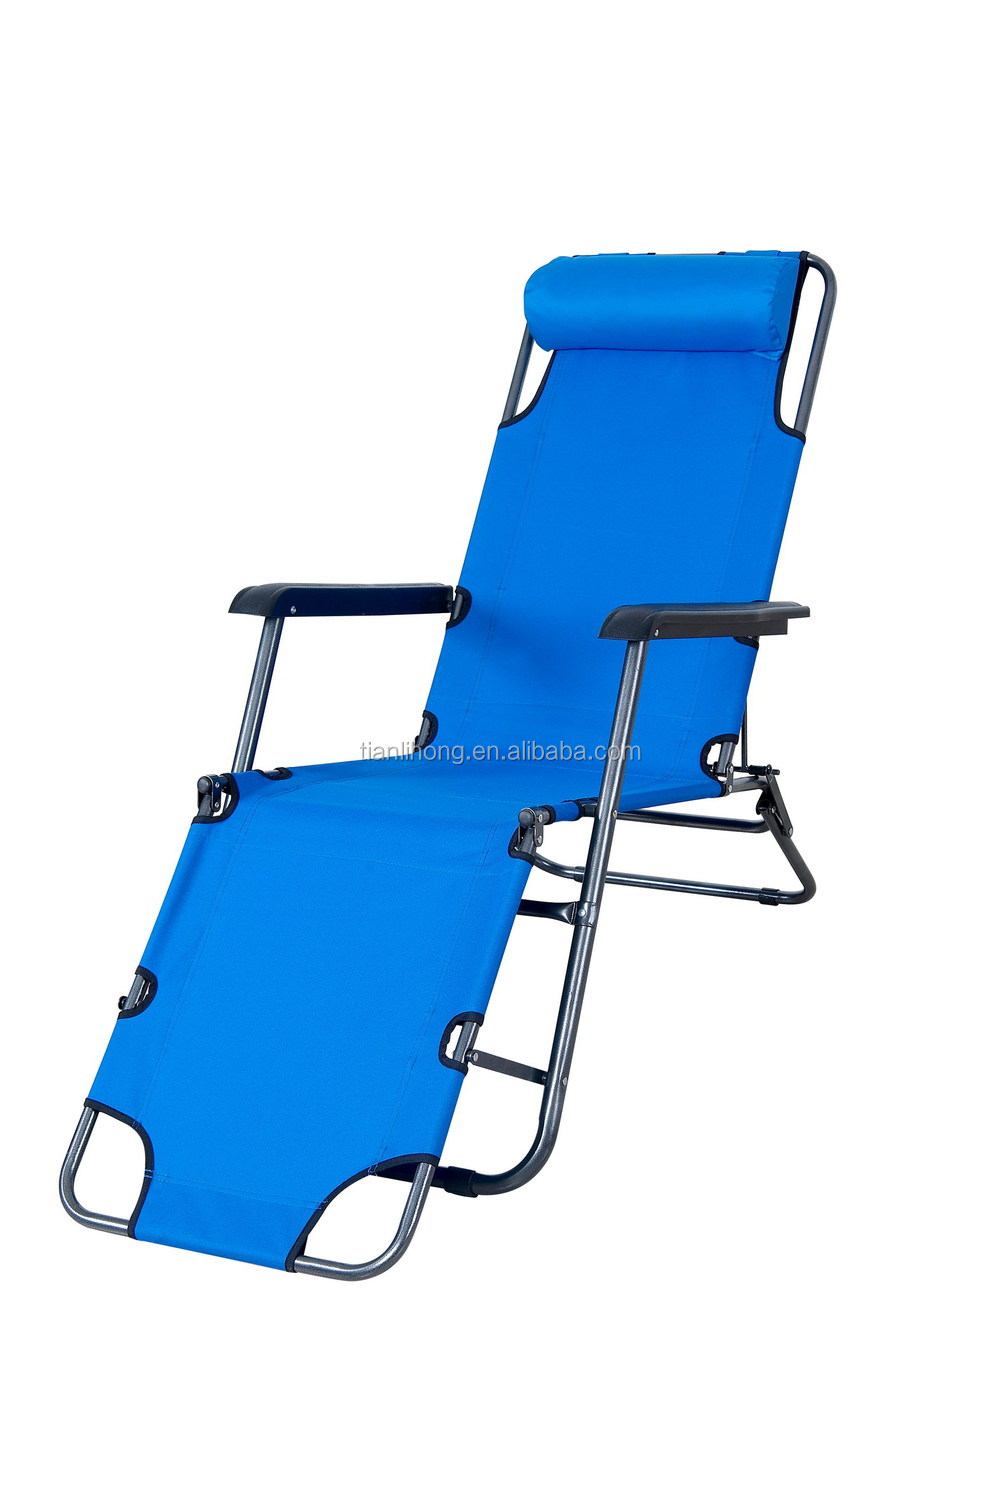 Cheap Foldable Relaxing Sleep Lounge Chair Buy Folding Beach Chair Lounge C